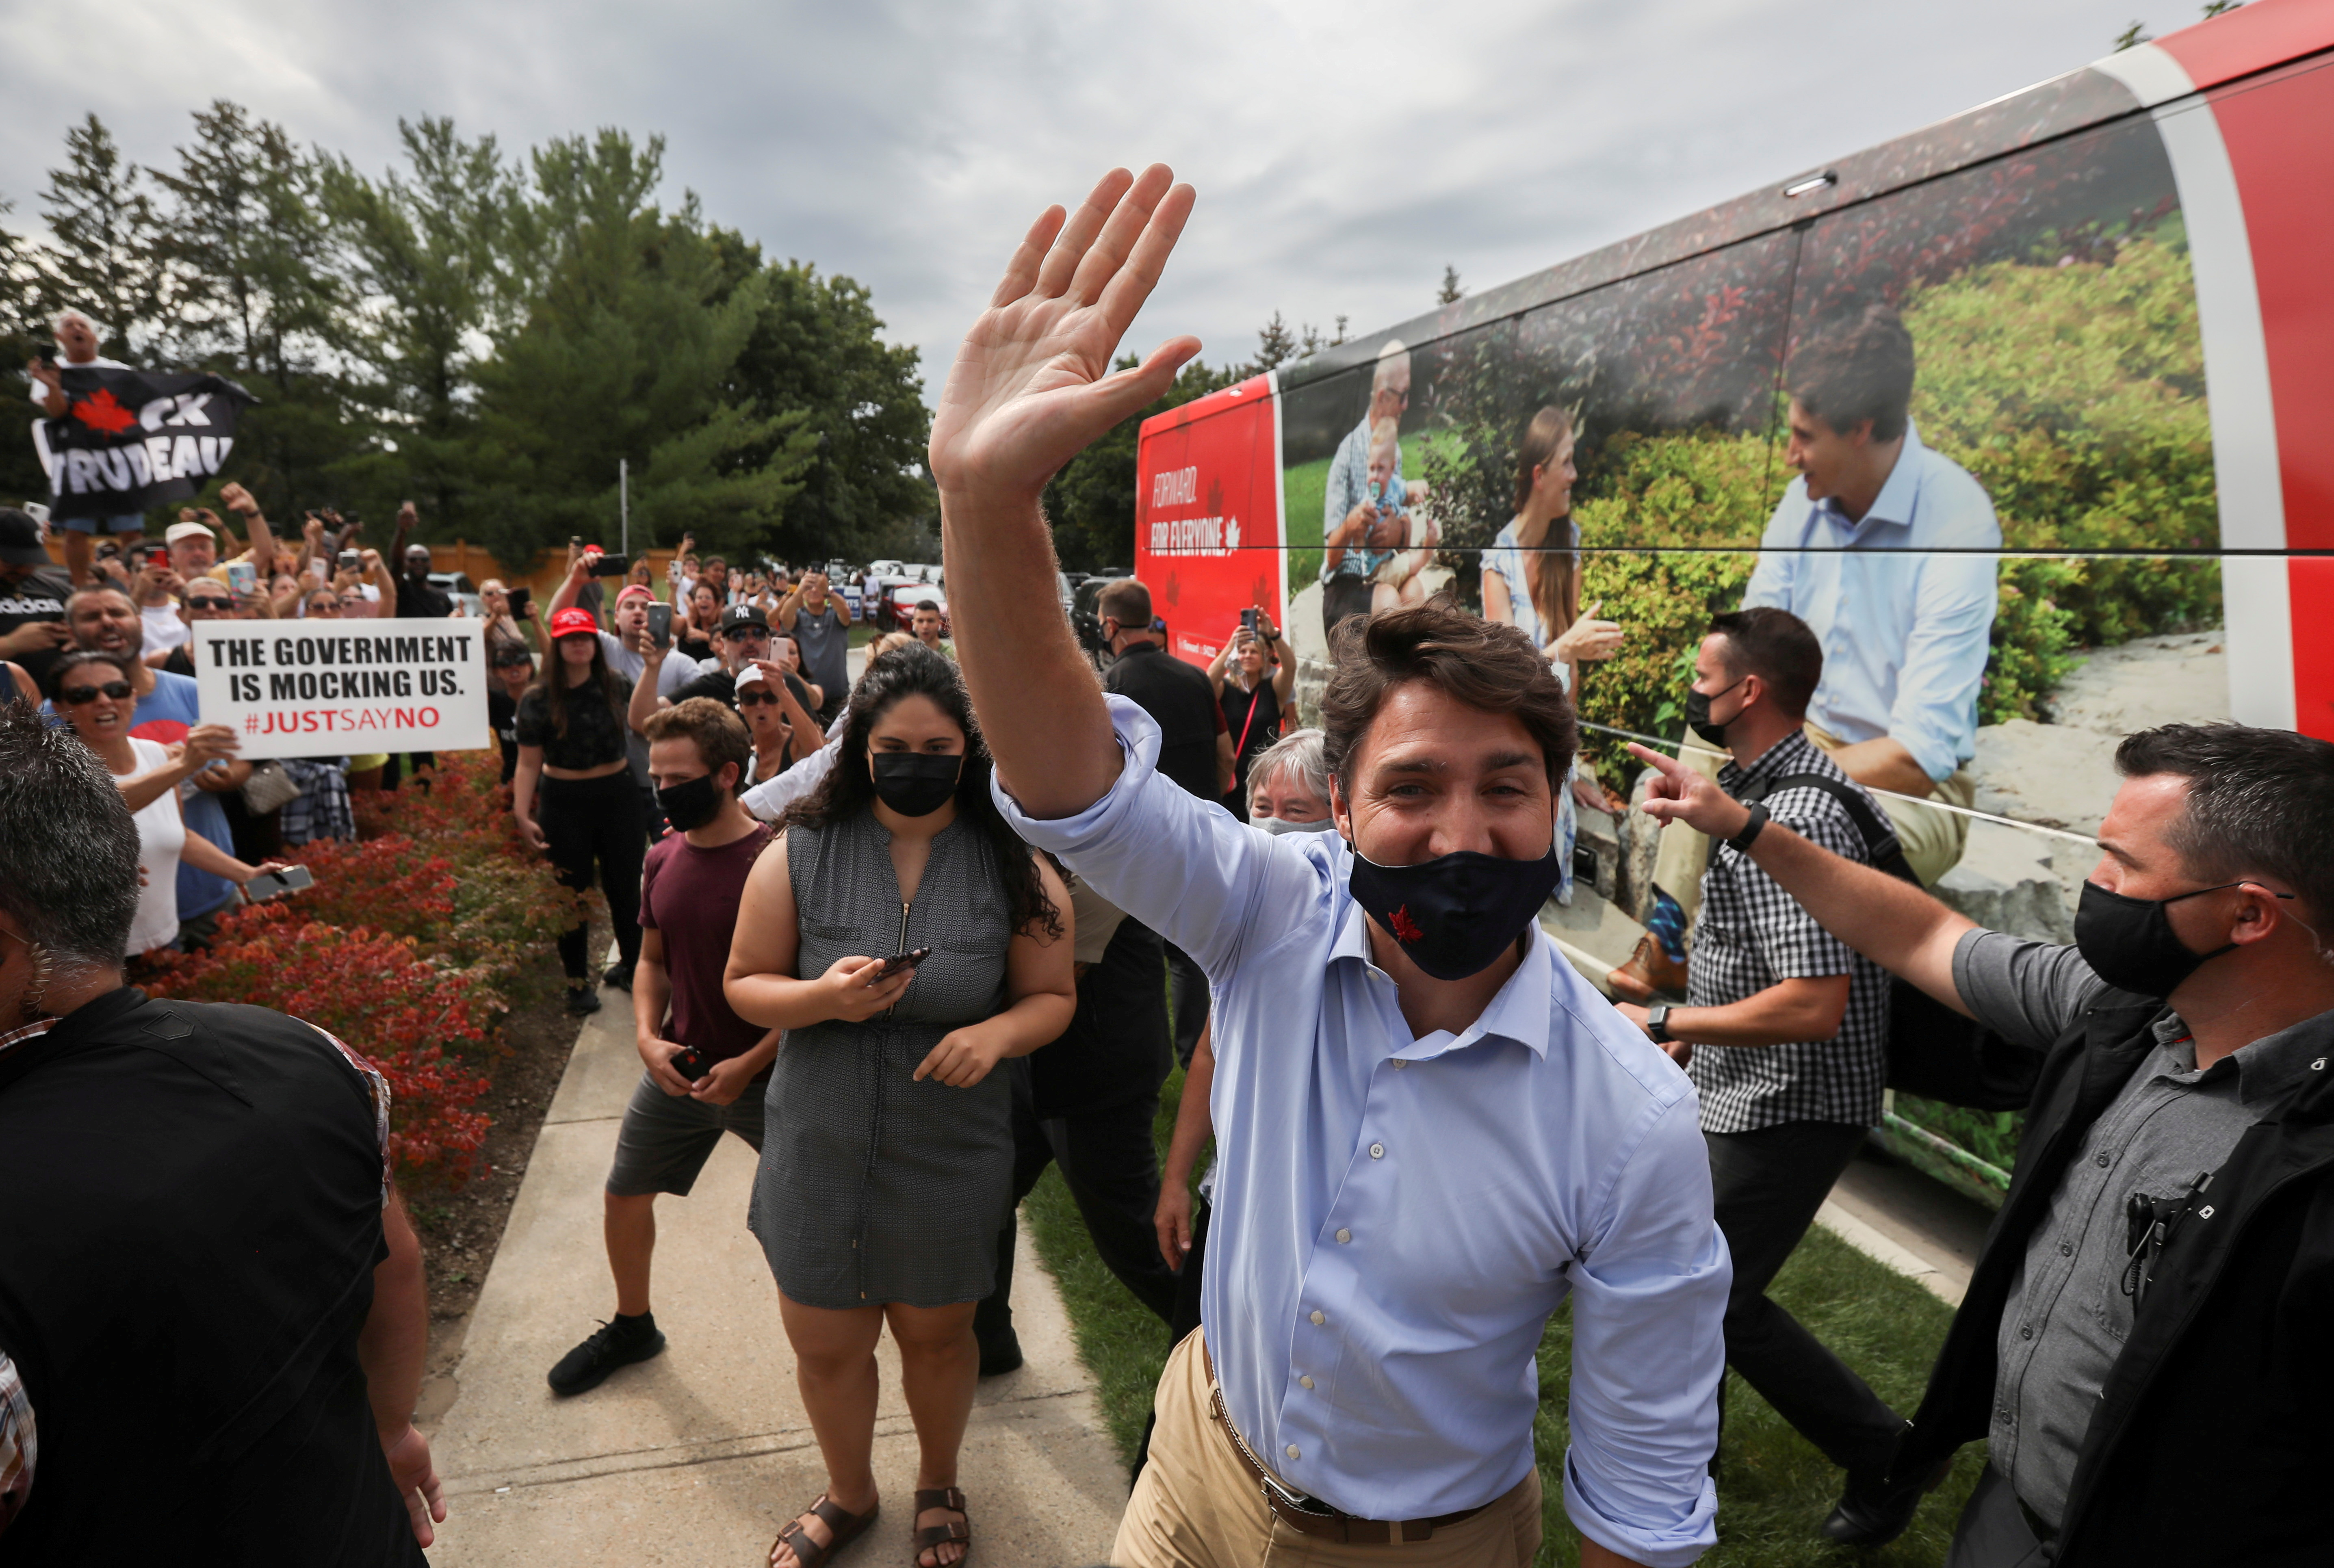 Canada's Liberal Prime Minister Justin Trudeau waves during his election campaign tour in Nobleton, Ontario, Canada August 27, 2021. REUTERS/Carlos Osorio